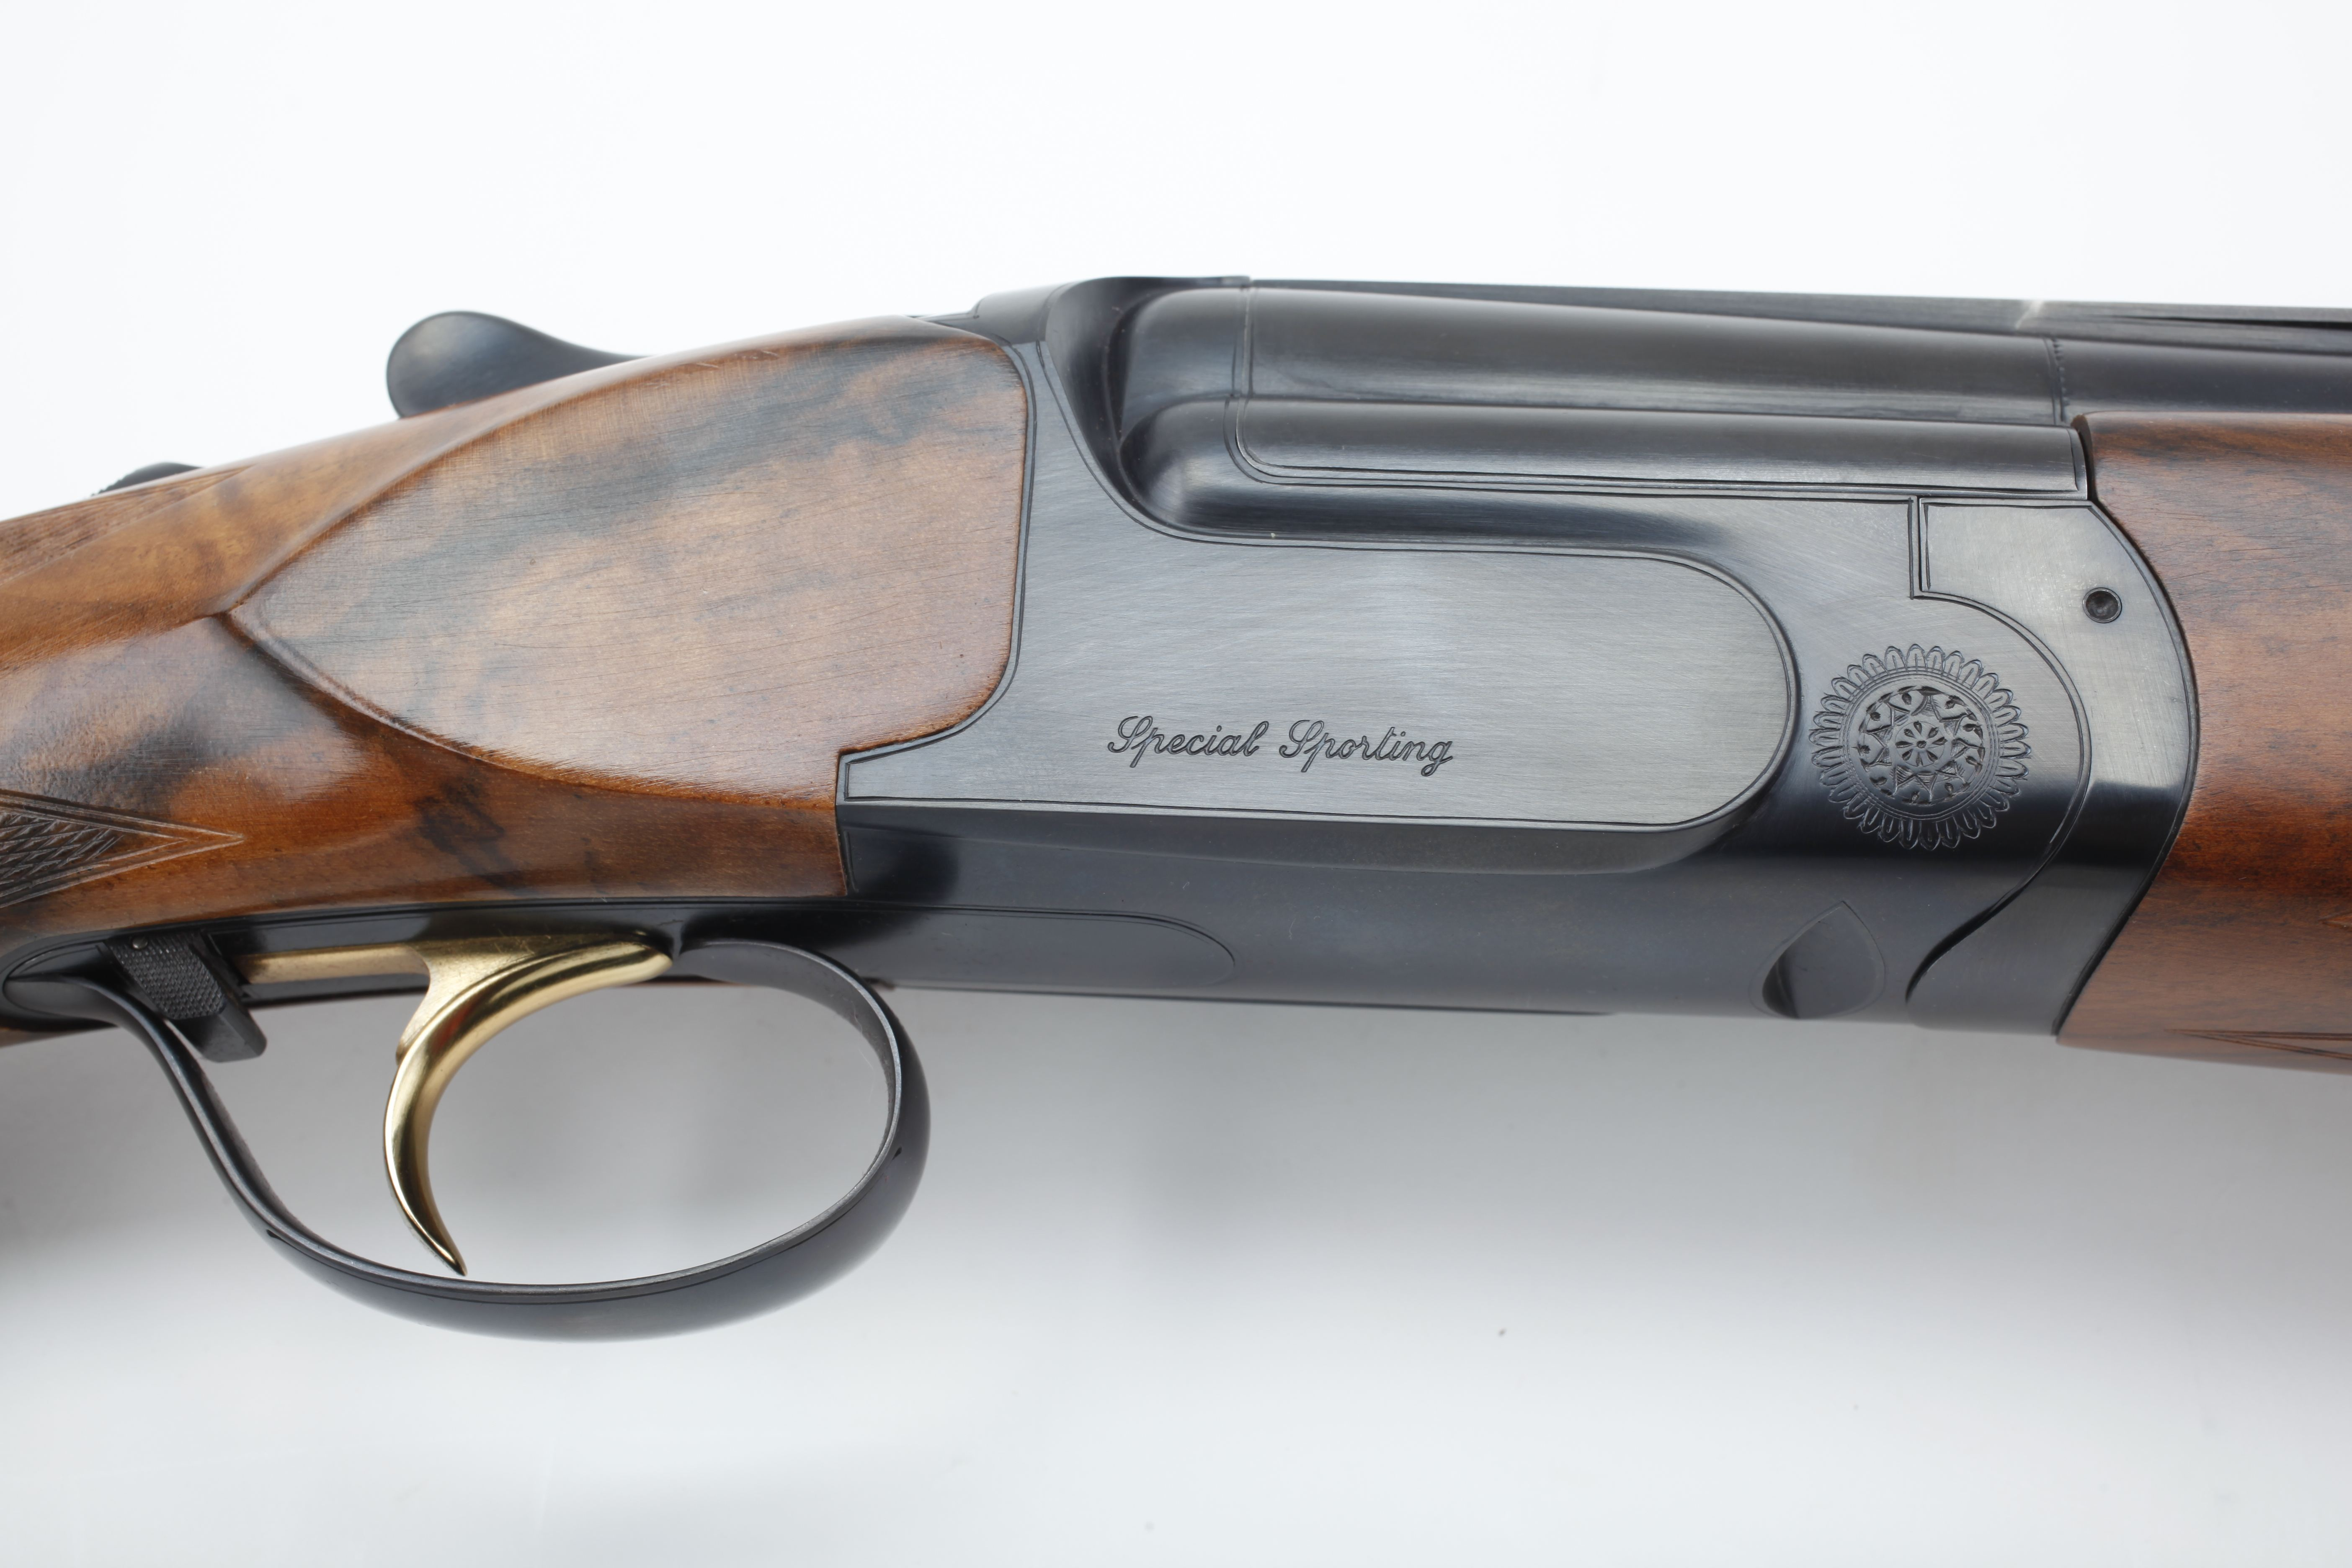 Perazzi Over-Under Shotgun - 12 ga.